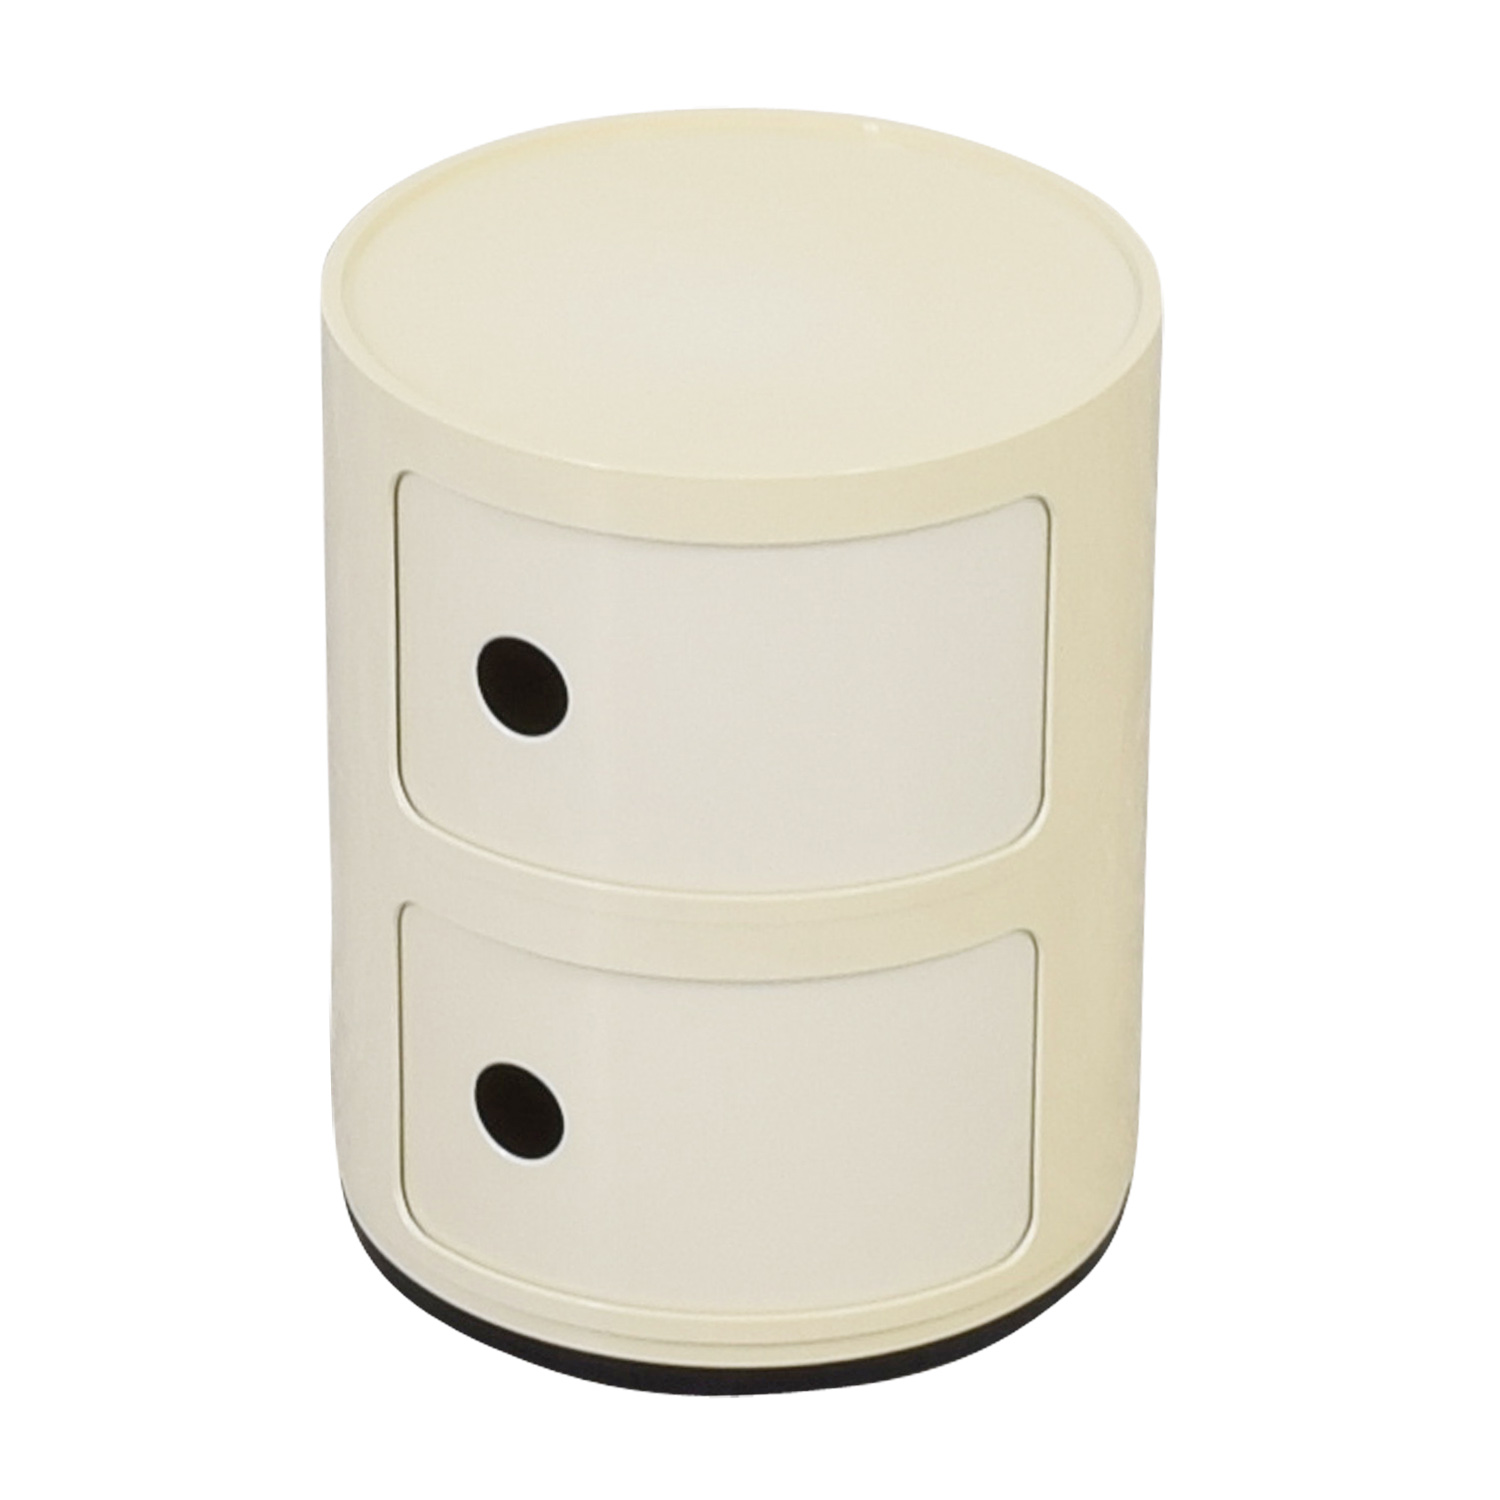 ... Buy Kartell Componibili Vanilla Round Storage End Table Kartell Tables  ...